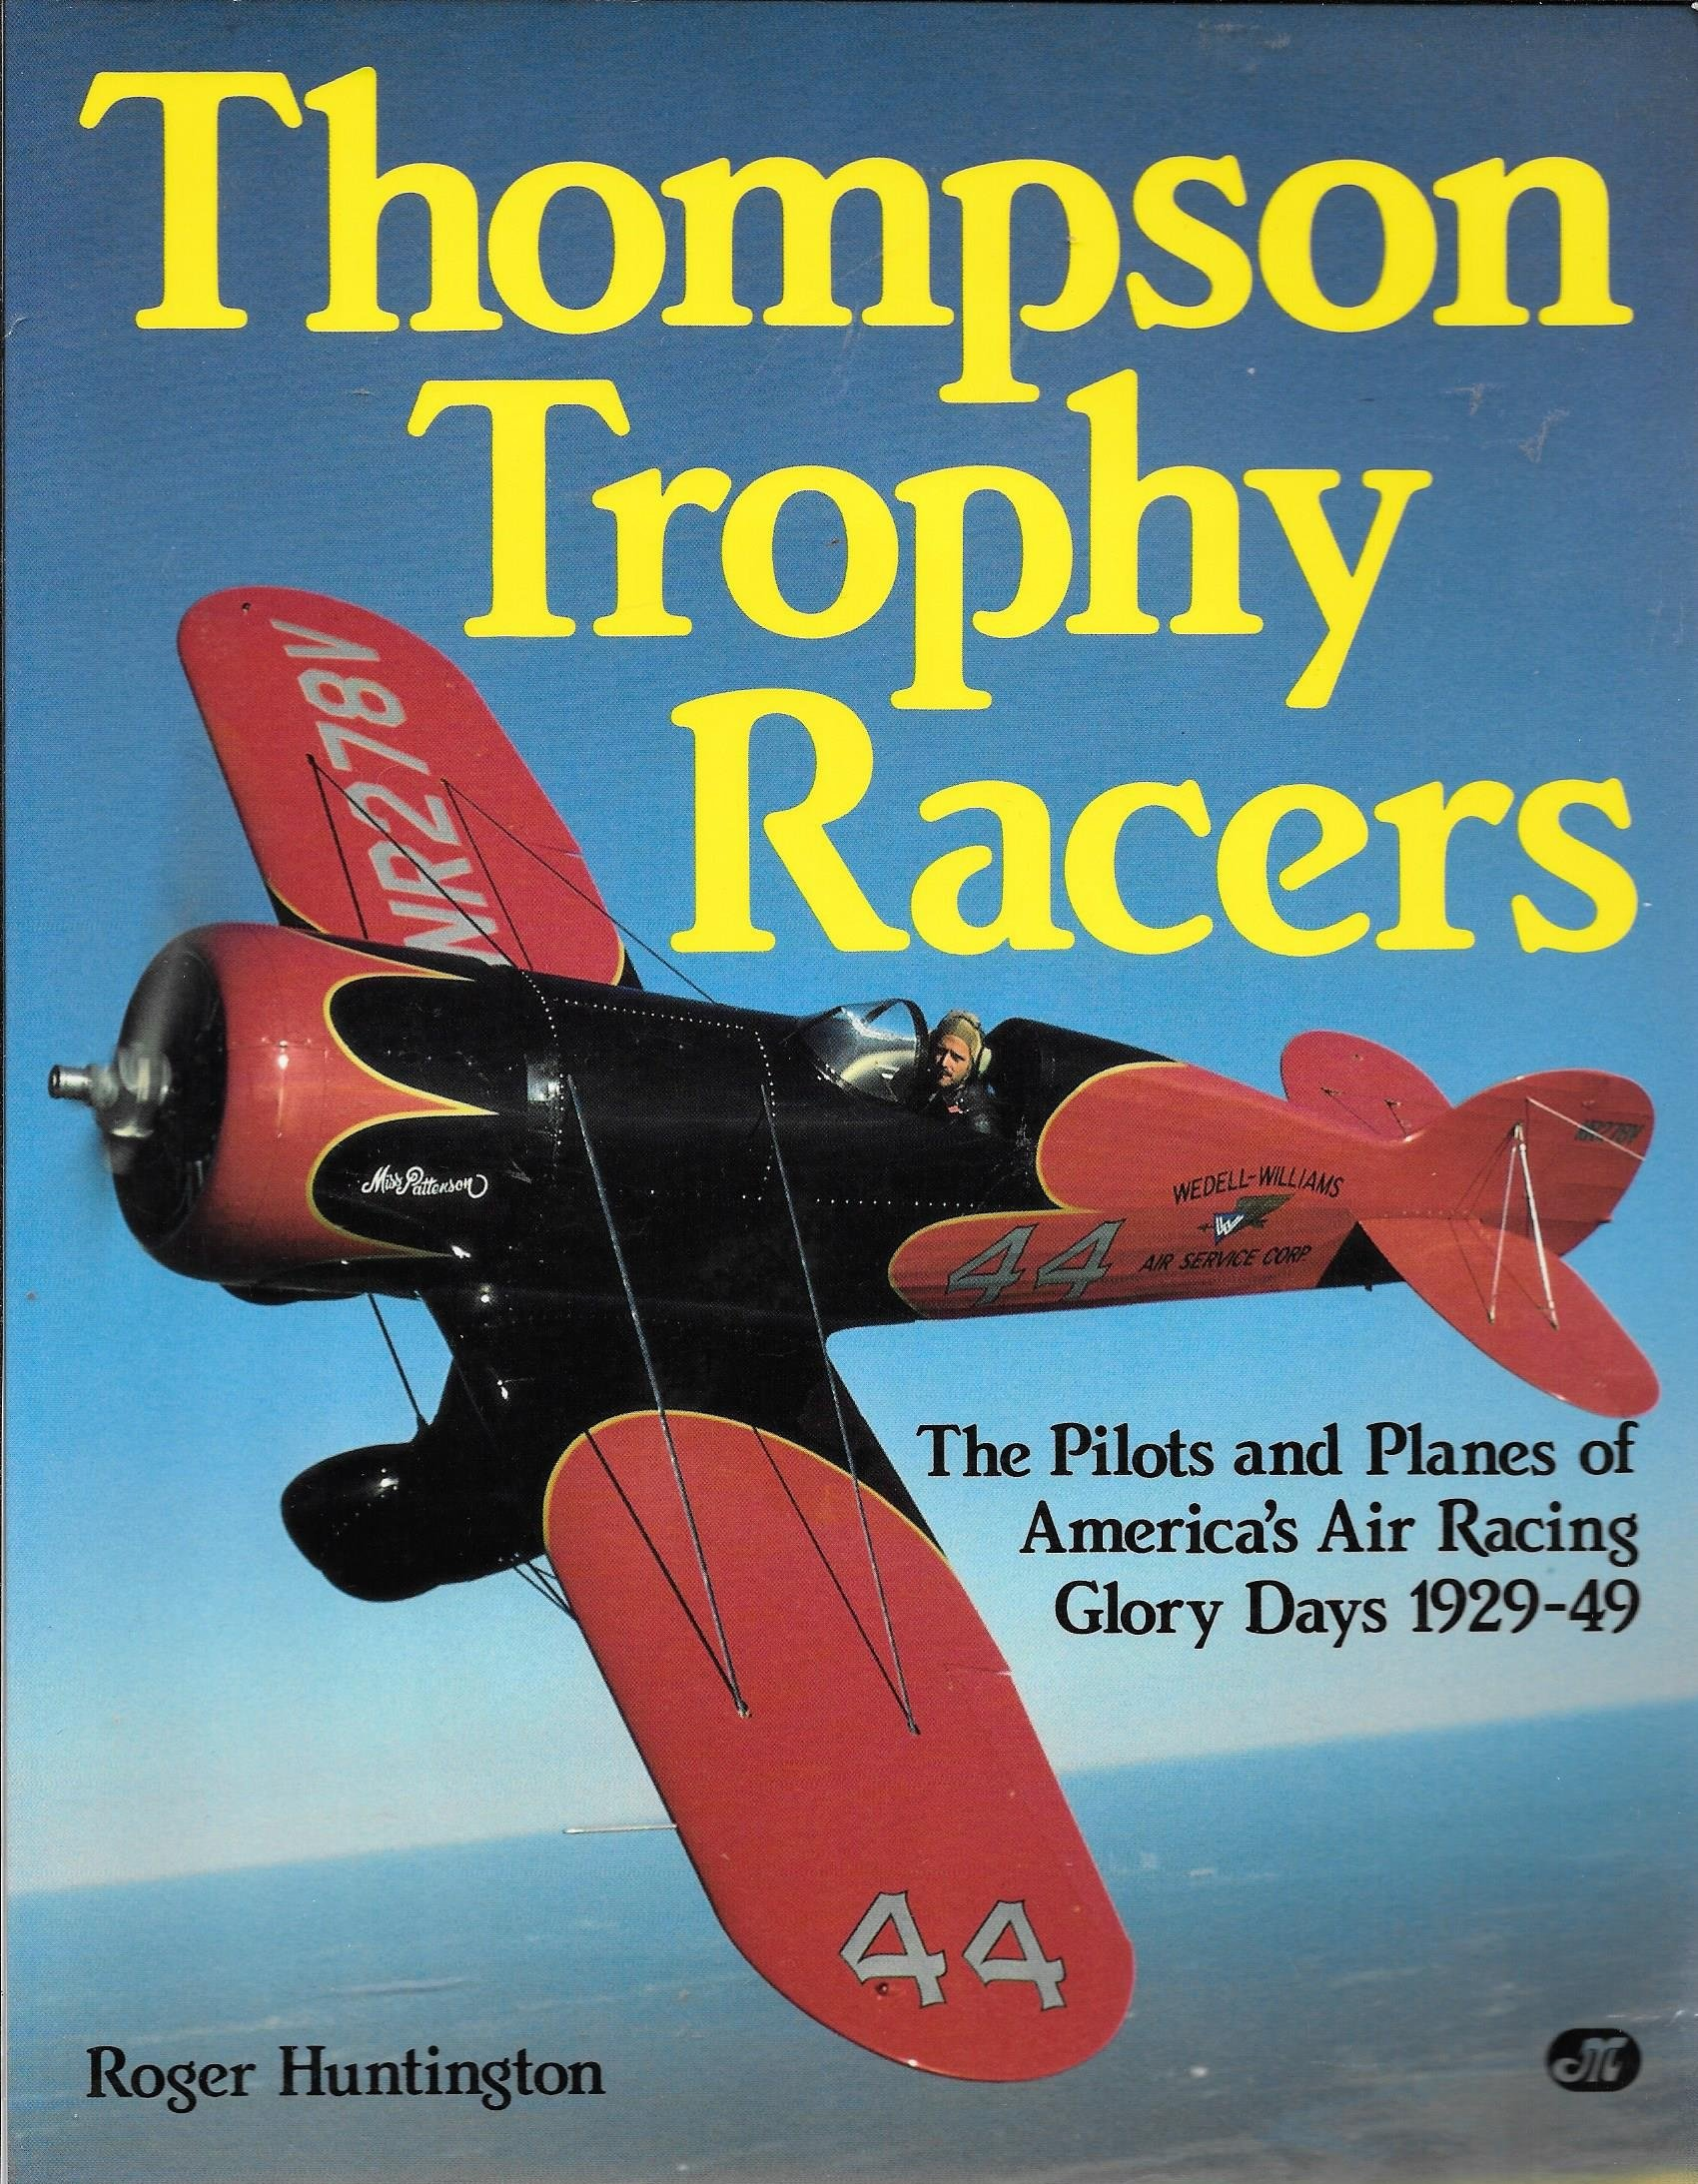 11 thoughts on the golden age of the national air races - Amazon Com Thompson Trophy Racers The Pilots And Planes Of America S Air Racing Glory Days 1929 49 9780879383657 Roger Huntington Books